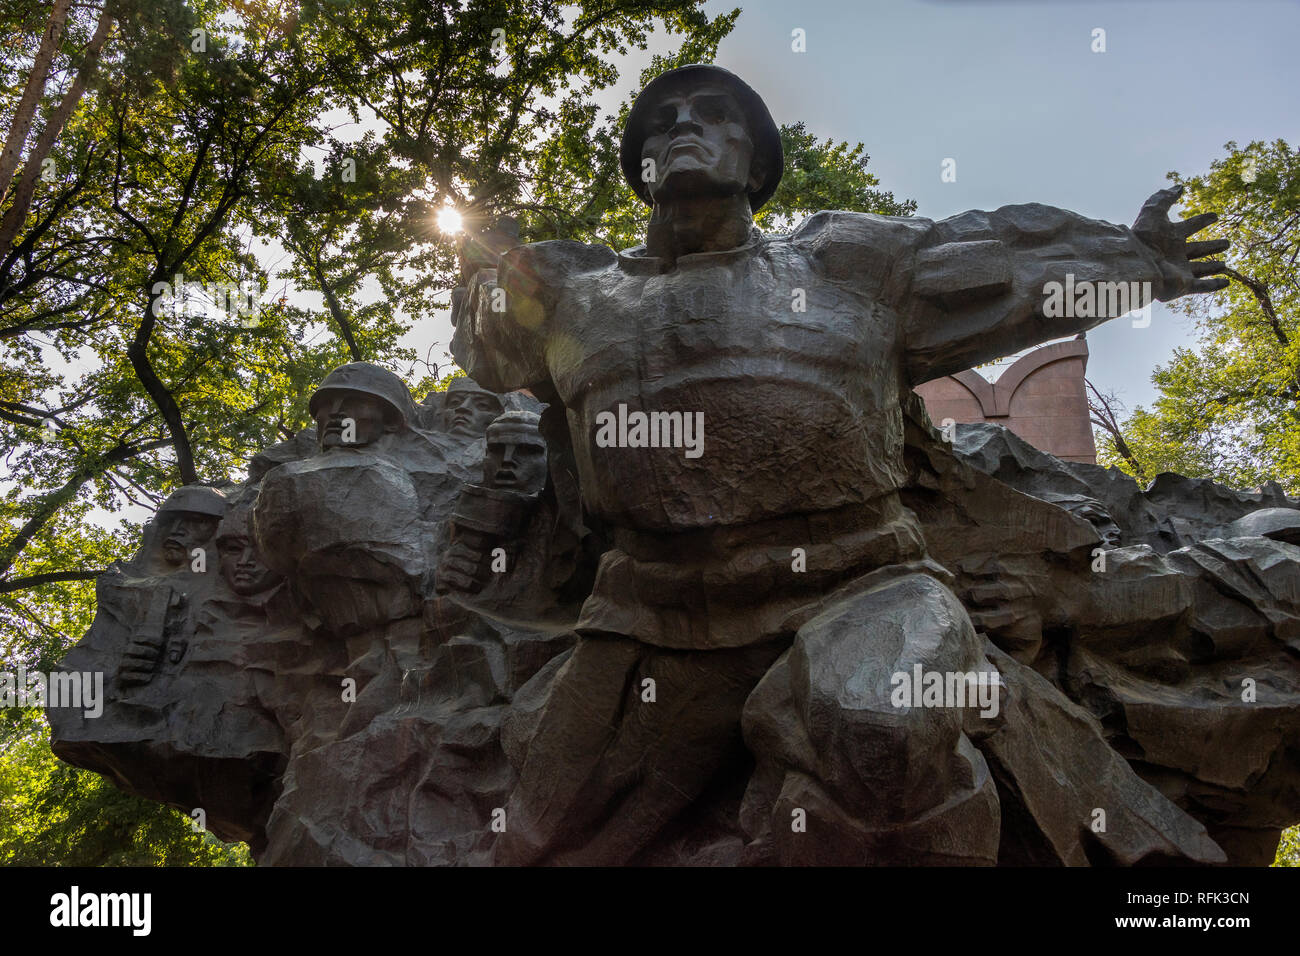 World War II memorial, 1975, Panfilov Park, Almaty, Kazakhstan Stock Photo